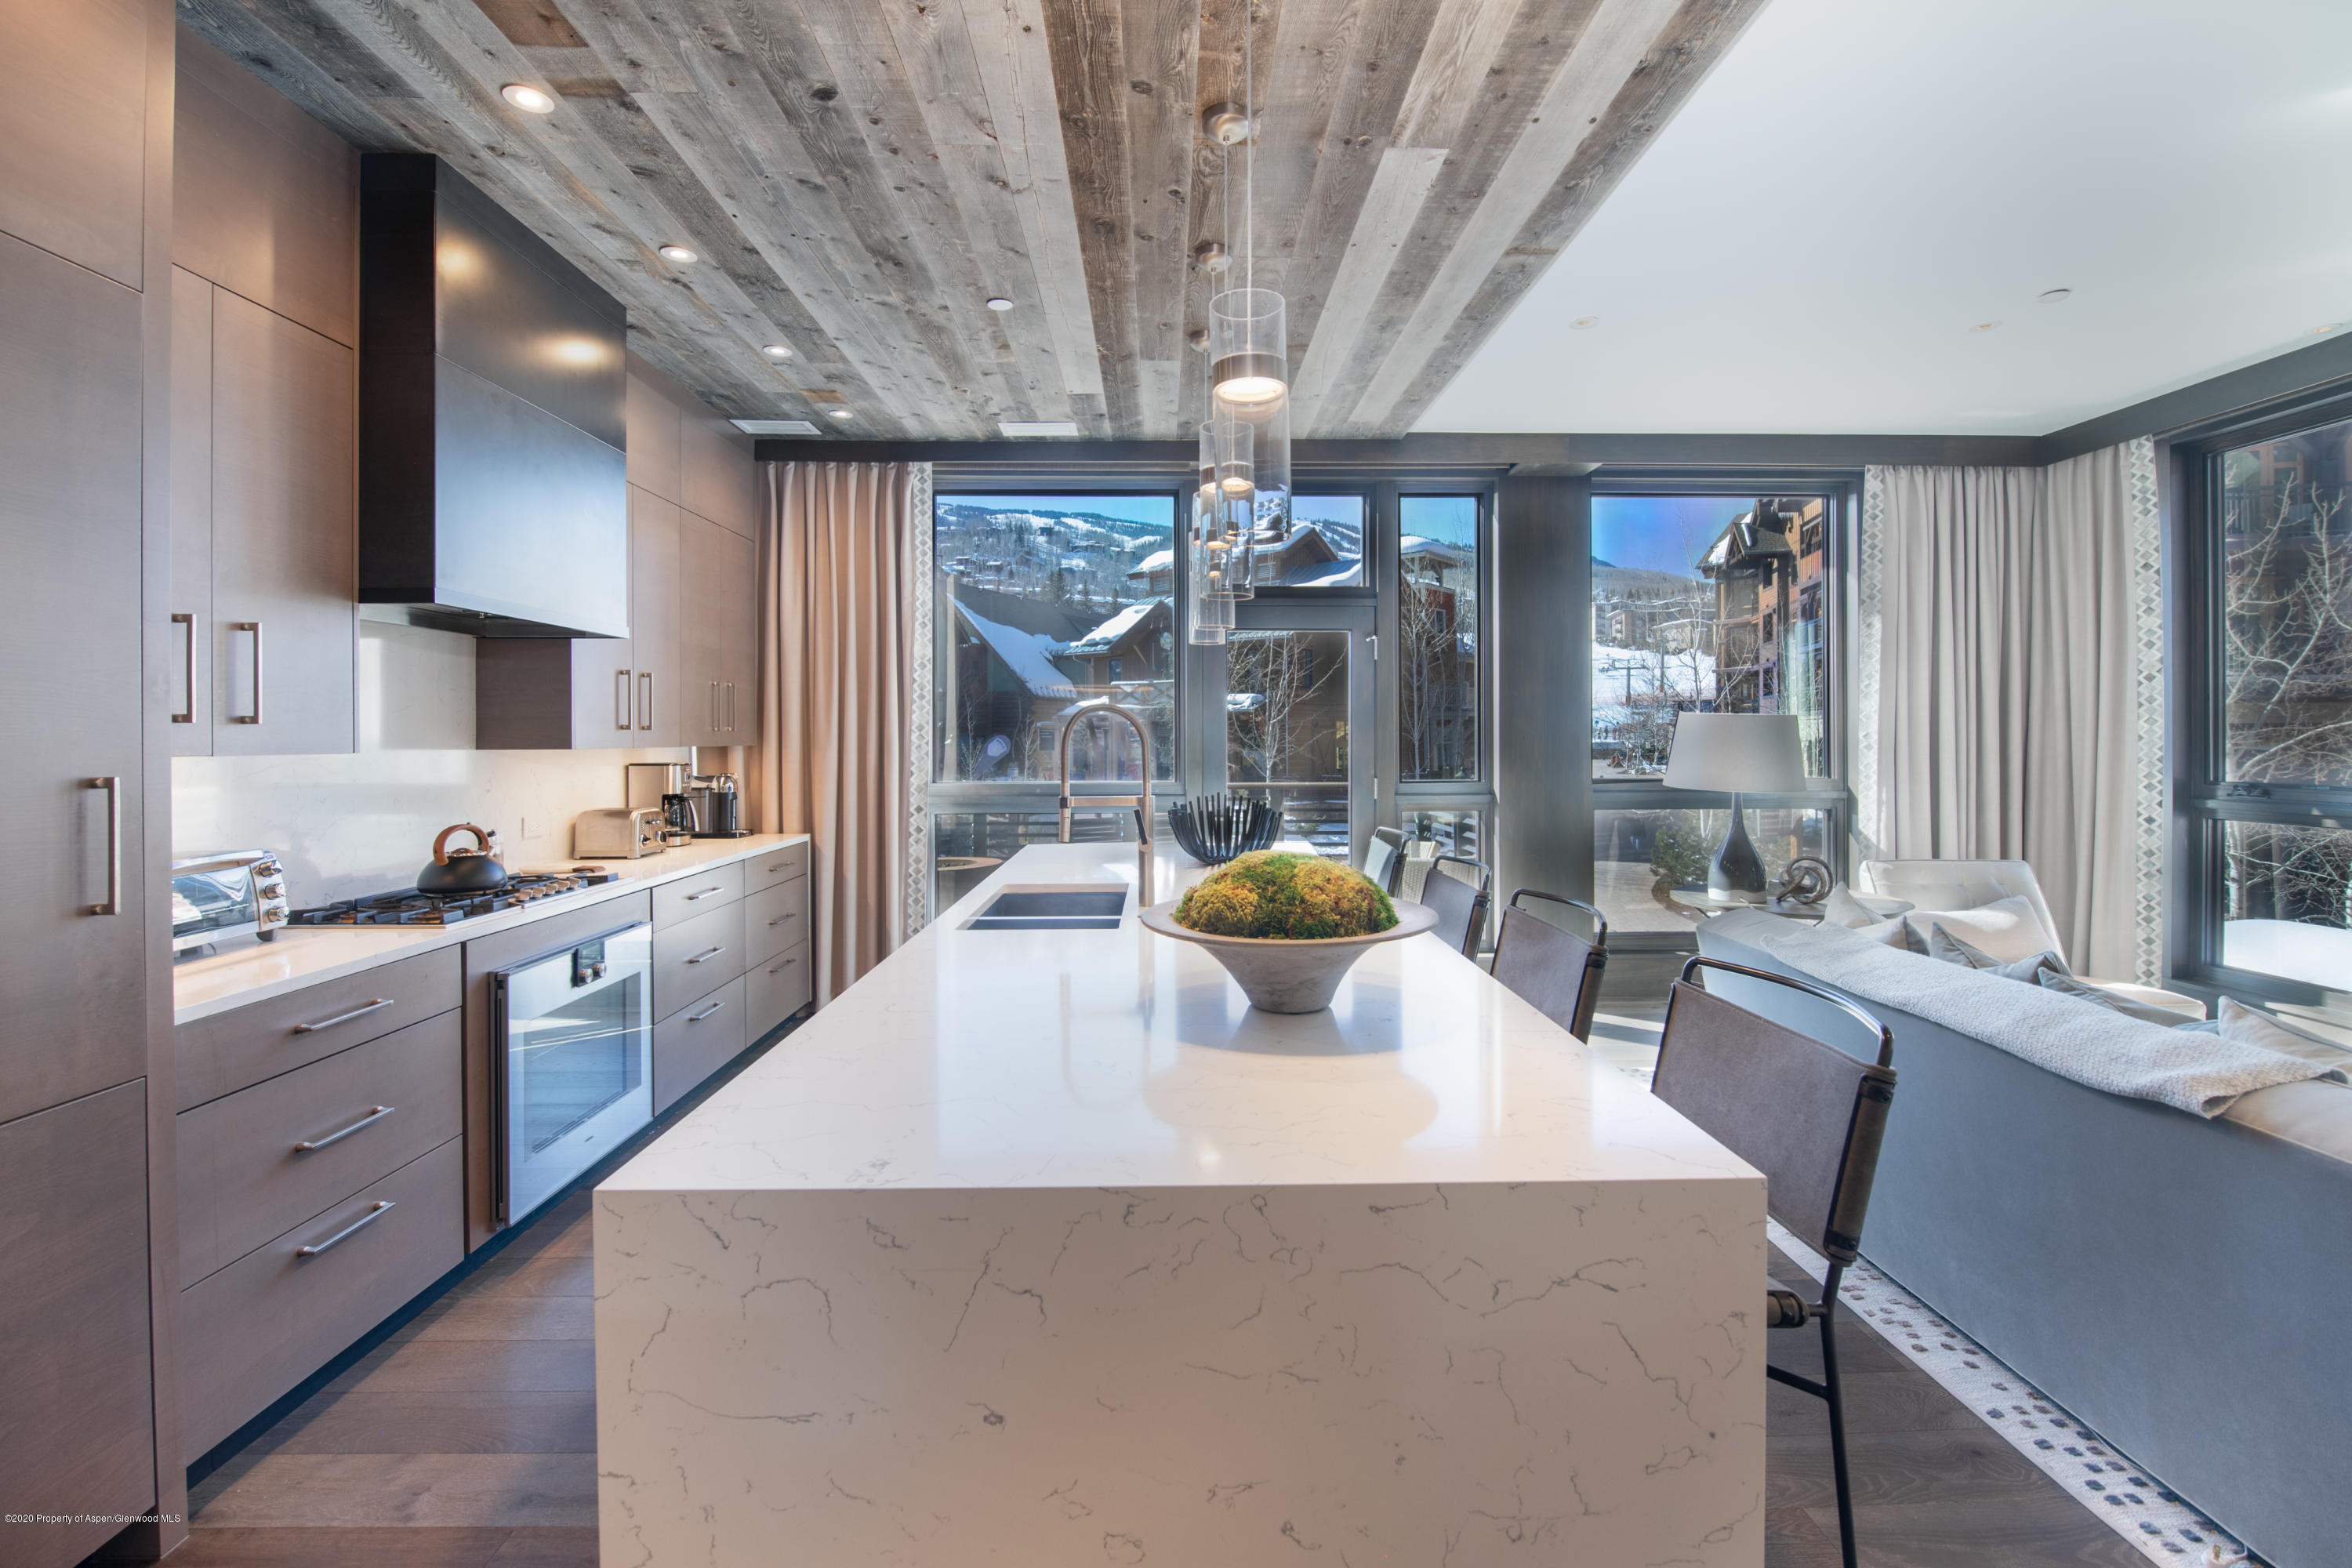 61 Wood Road, 2 - Snowmass Village, Colorado